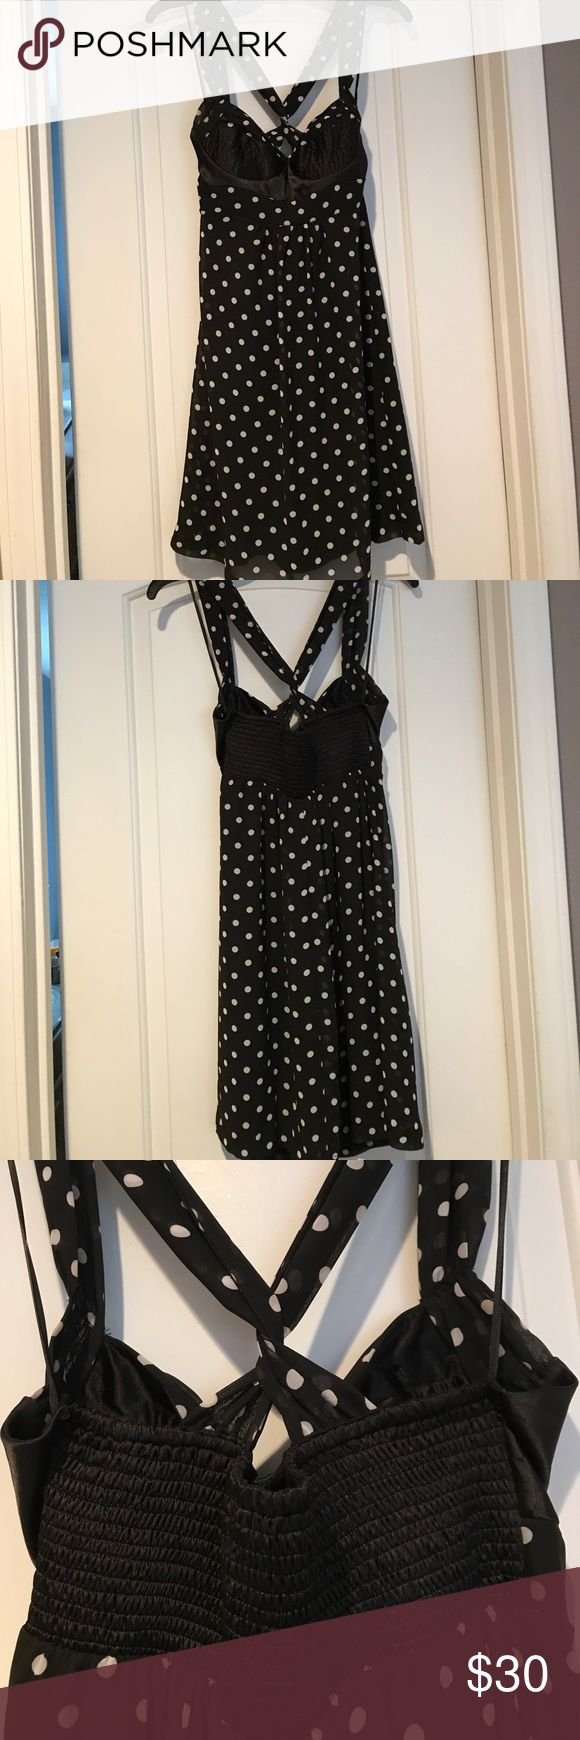 Polka dot cocktail dress This is a super cute black and white polka dot dress. Straps and lower part of dress are chiffon and bust is satin. Back of straps twist and there is shirring on back. Liner under skirt. Excellent condition and has a fun retro look to it!  Size tag says 7, but I would say it fits size small best. Guess Dresses